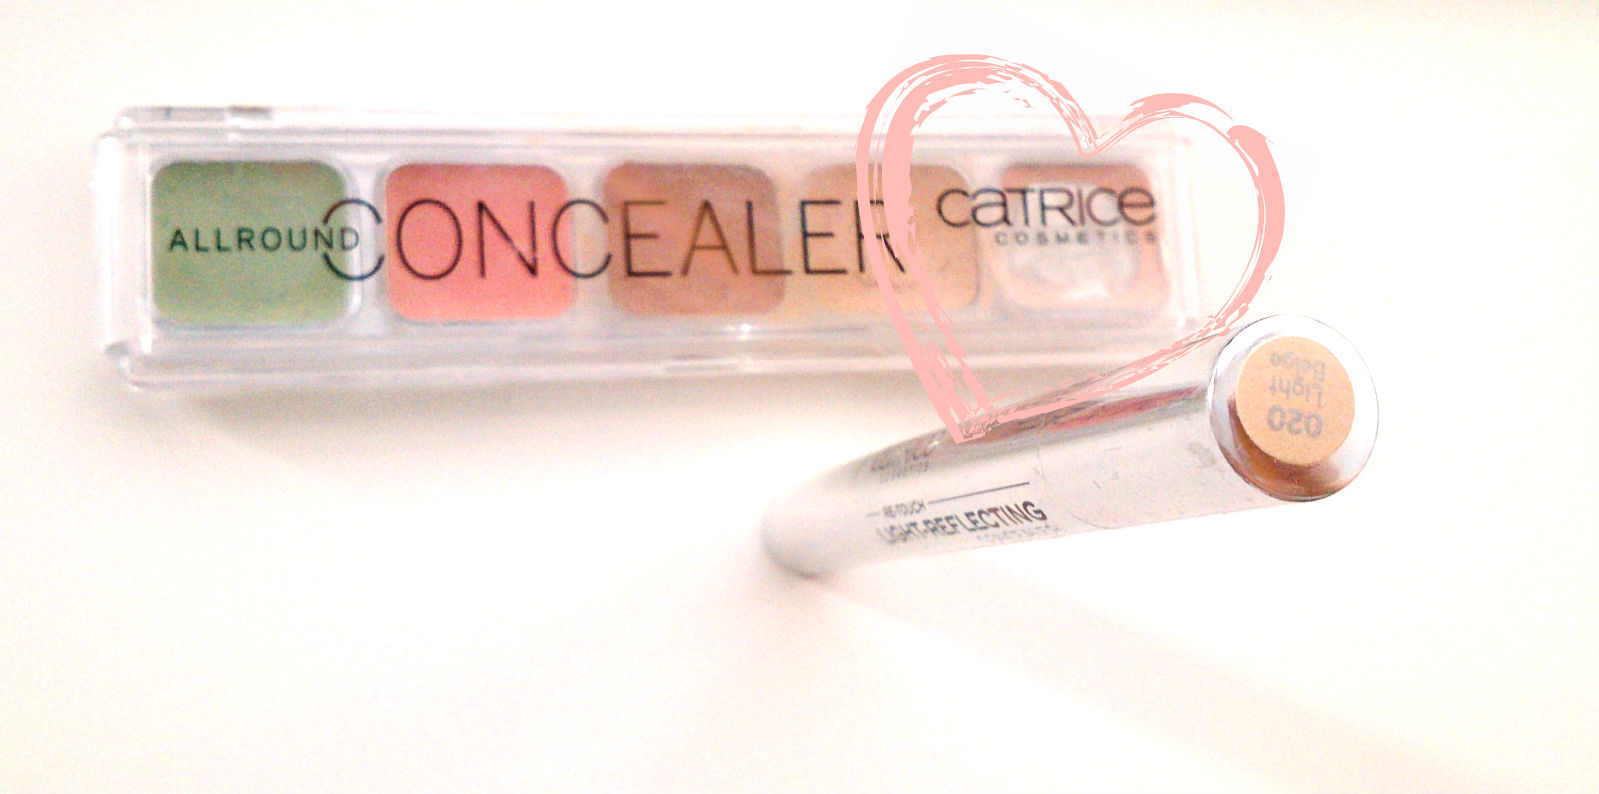 Hihglighter allround Concealer Palette